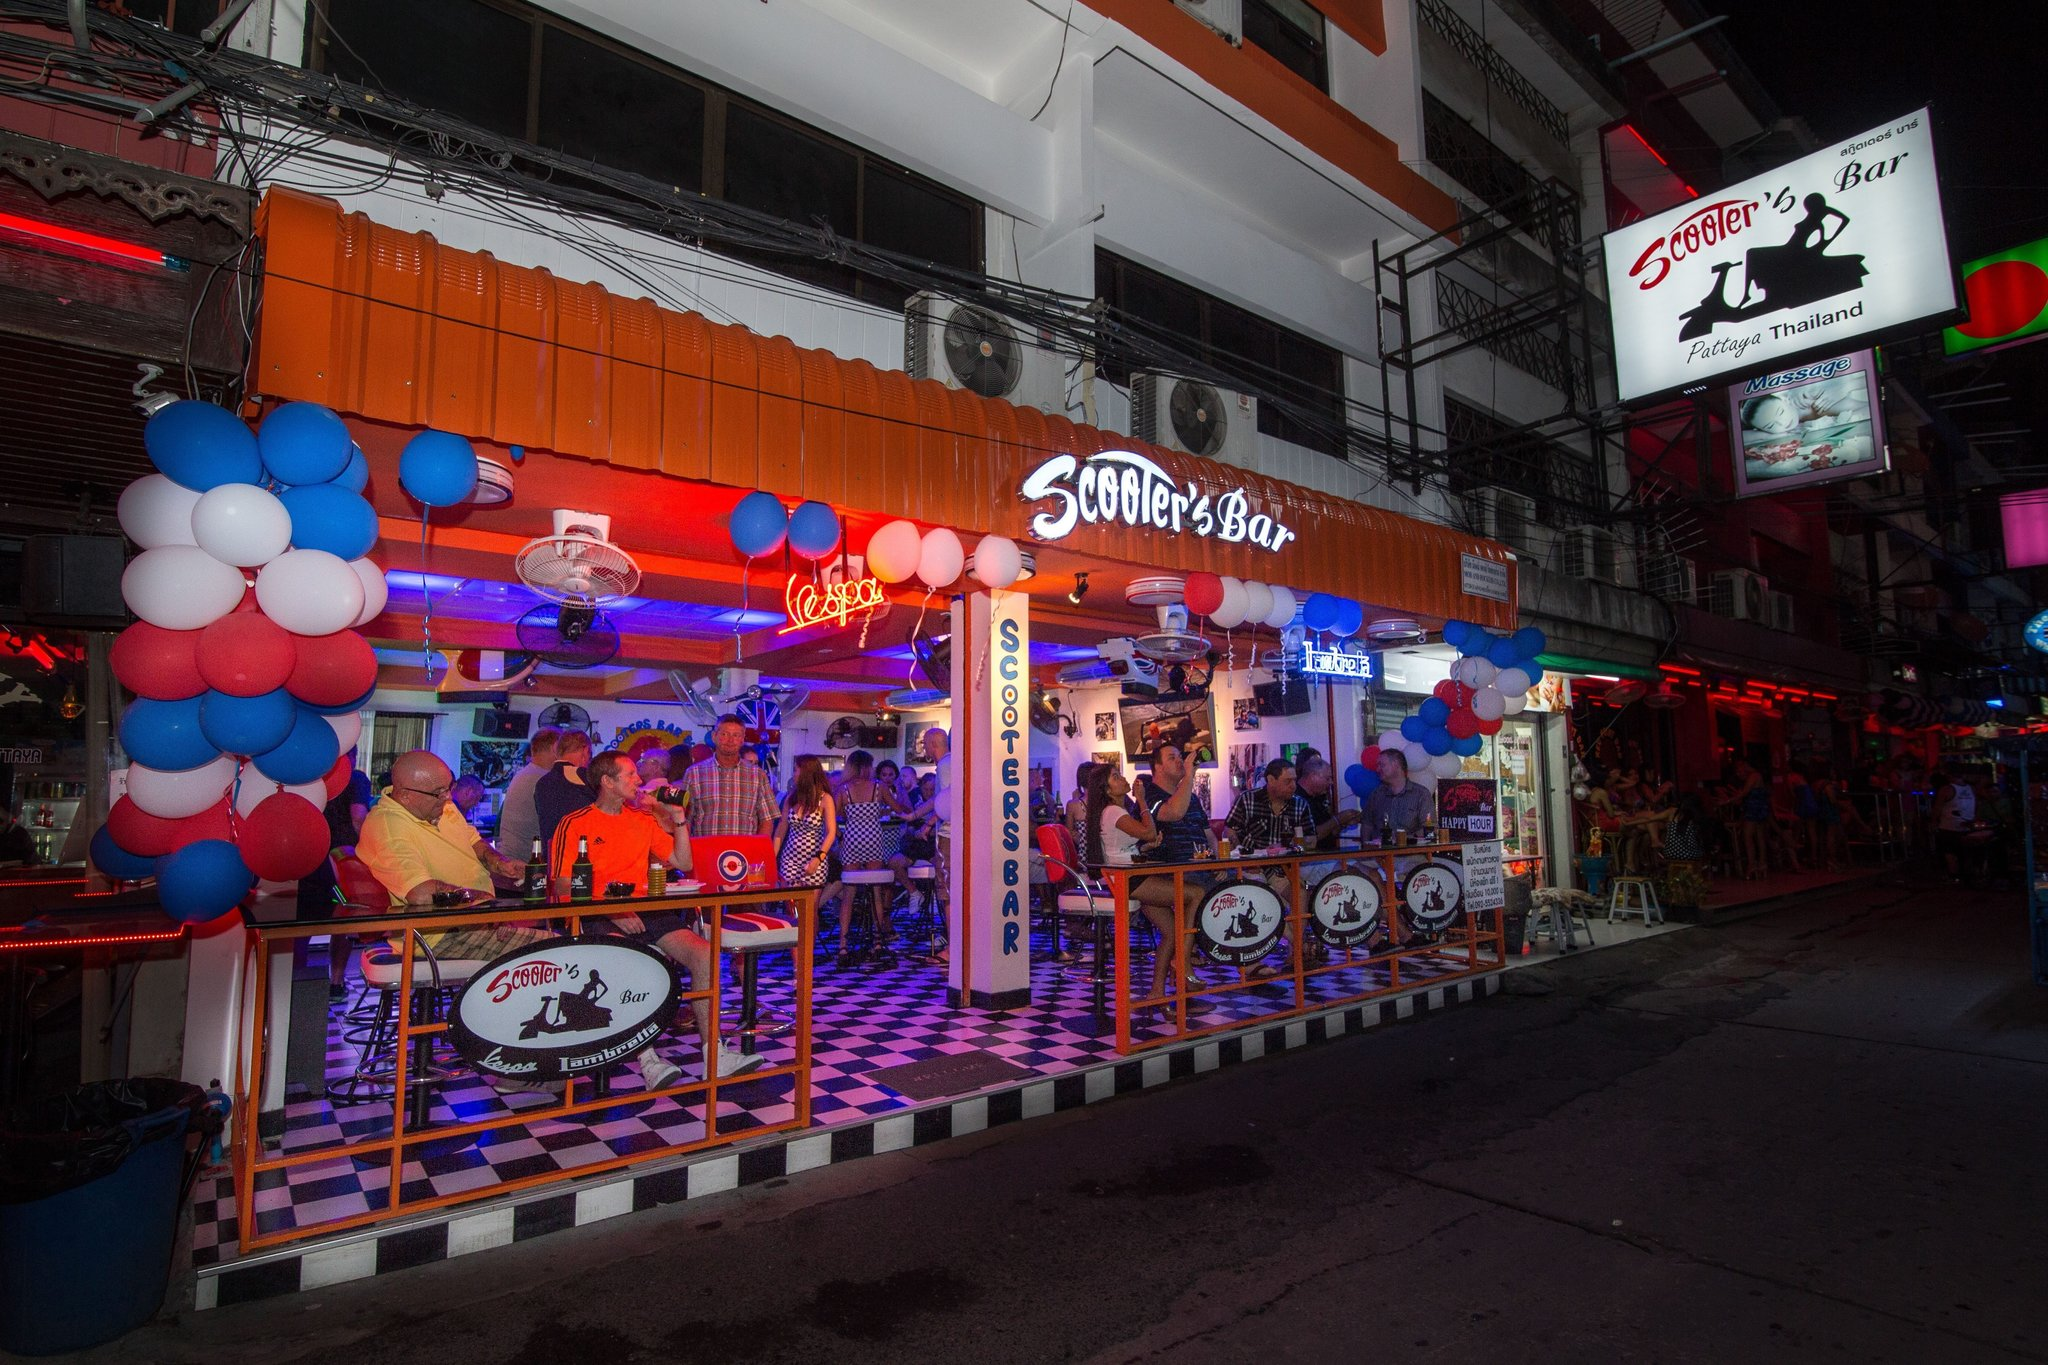 About-Us-Scooters-Bar-Pattaya-1.jpg